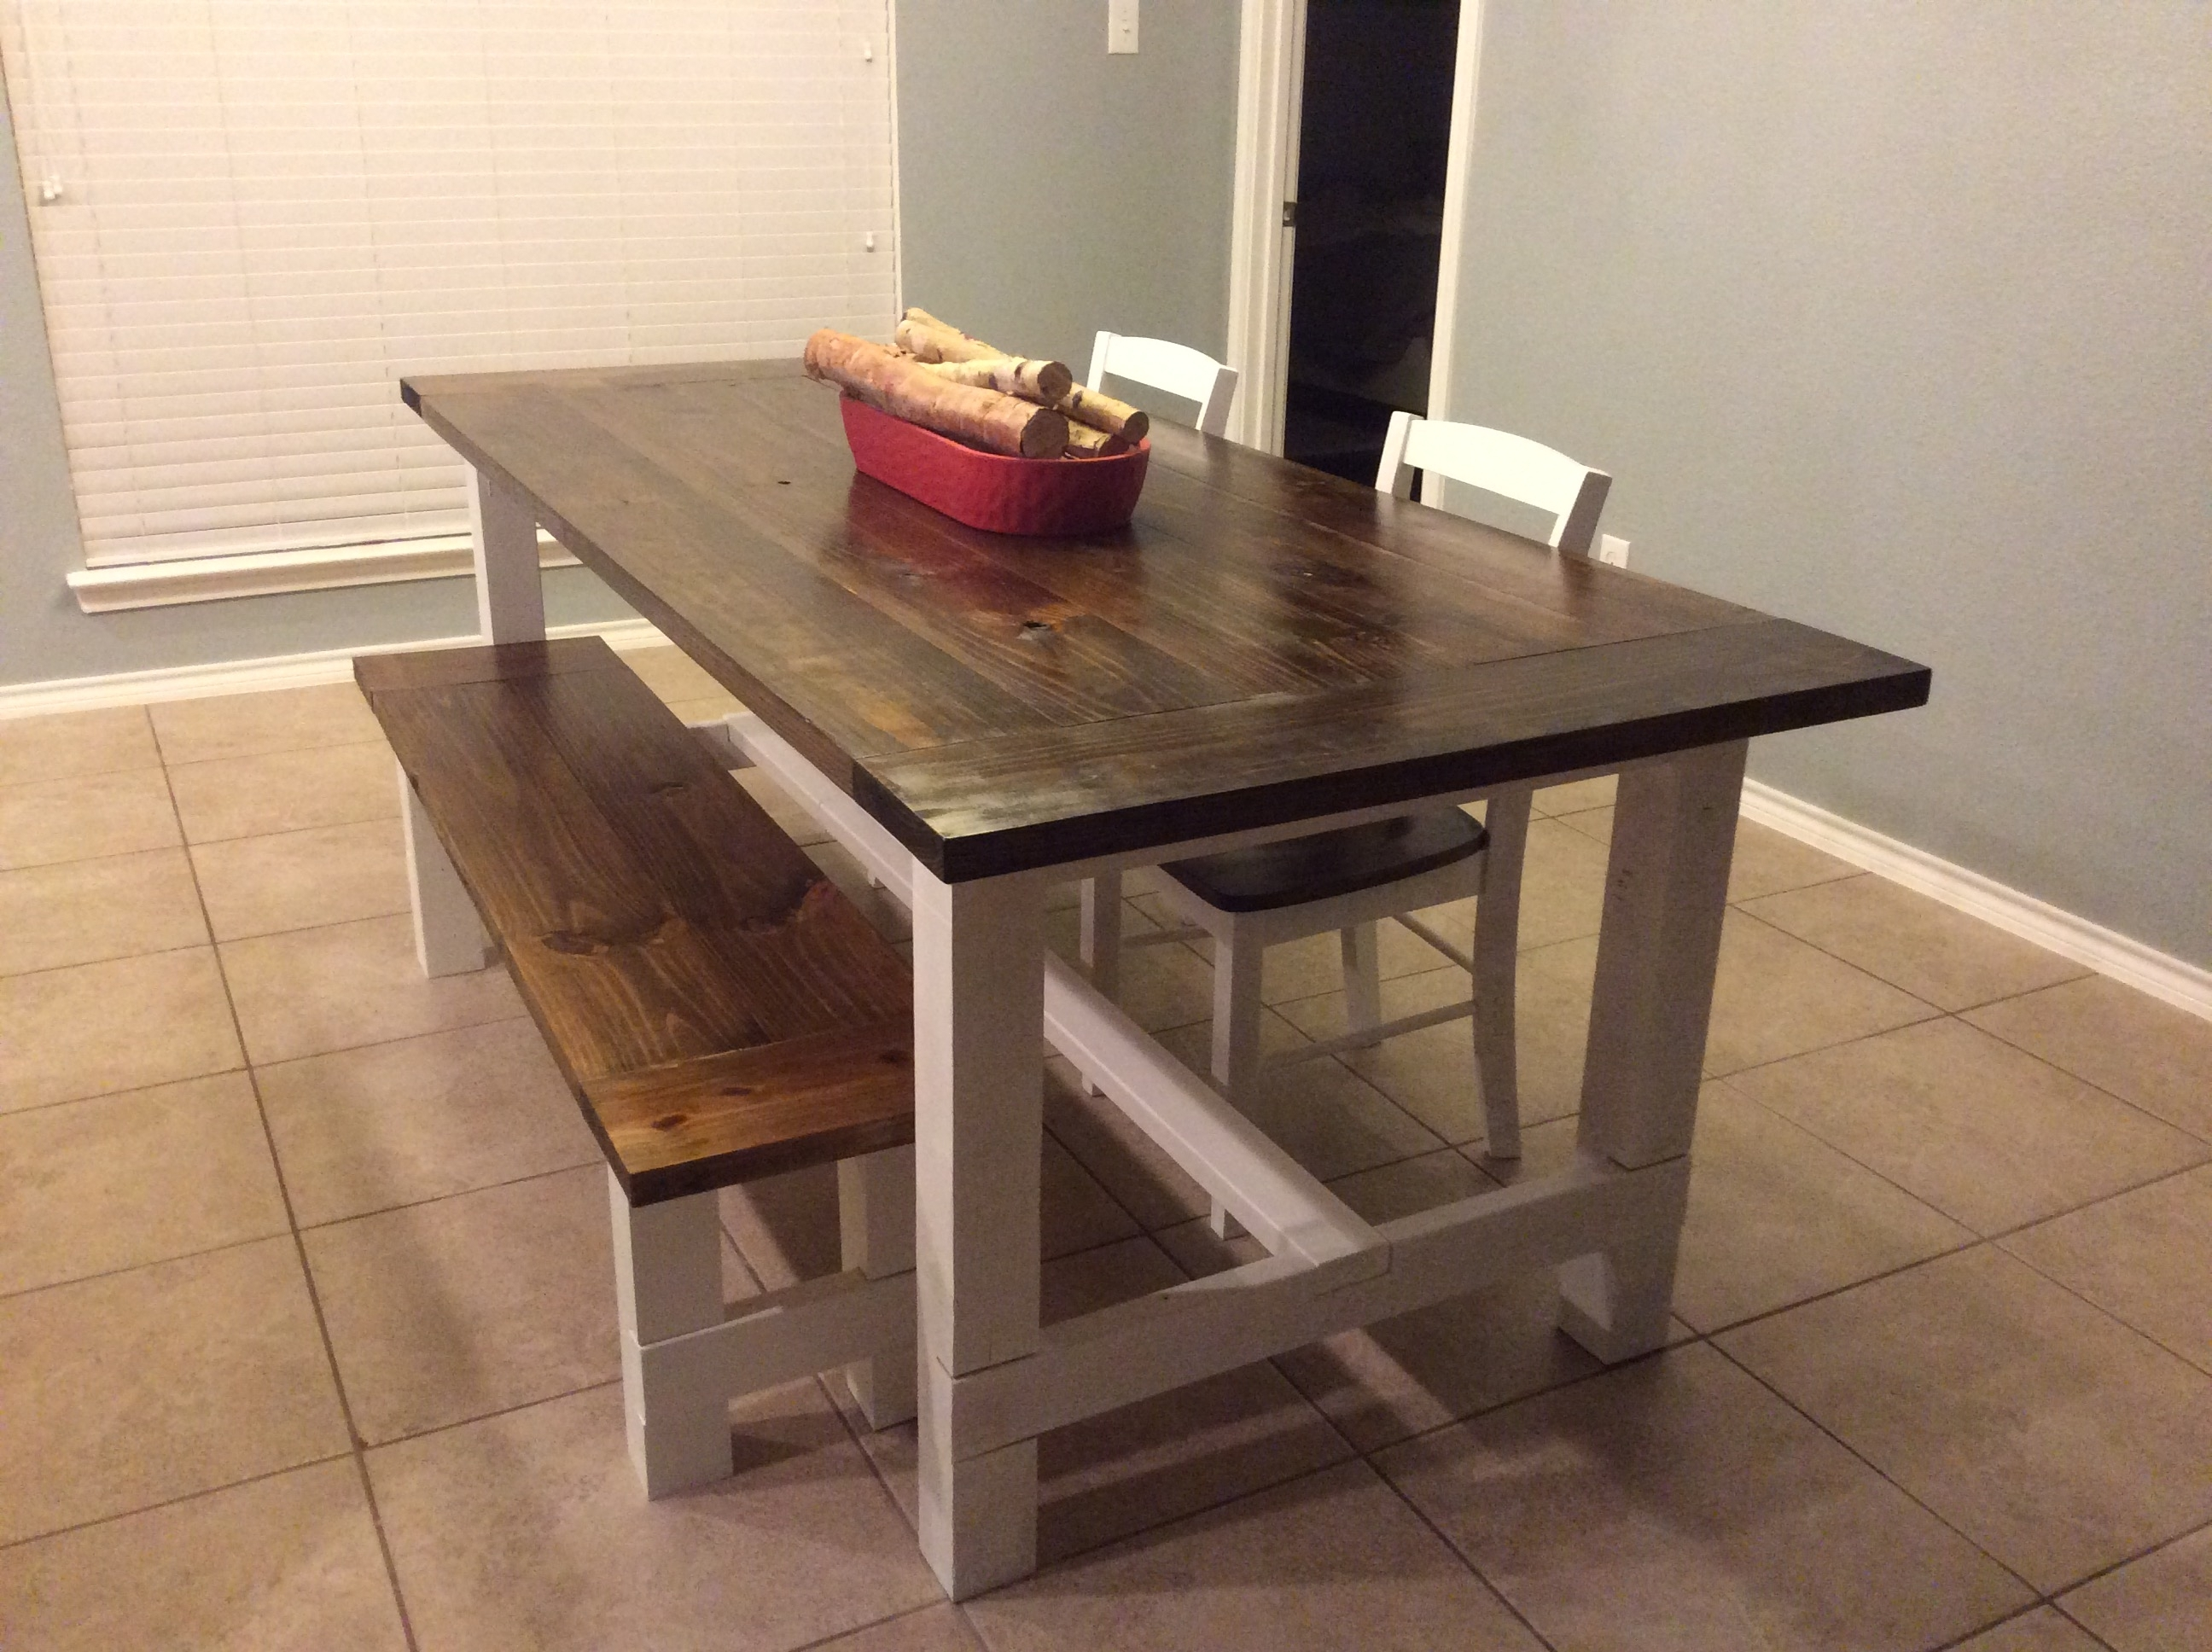 Country Dining Tables Within Well Known Diy Country Style Dining Table – Album On Imgur (View 6 of 25)